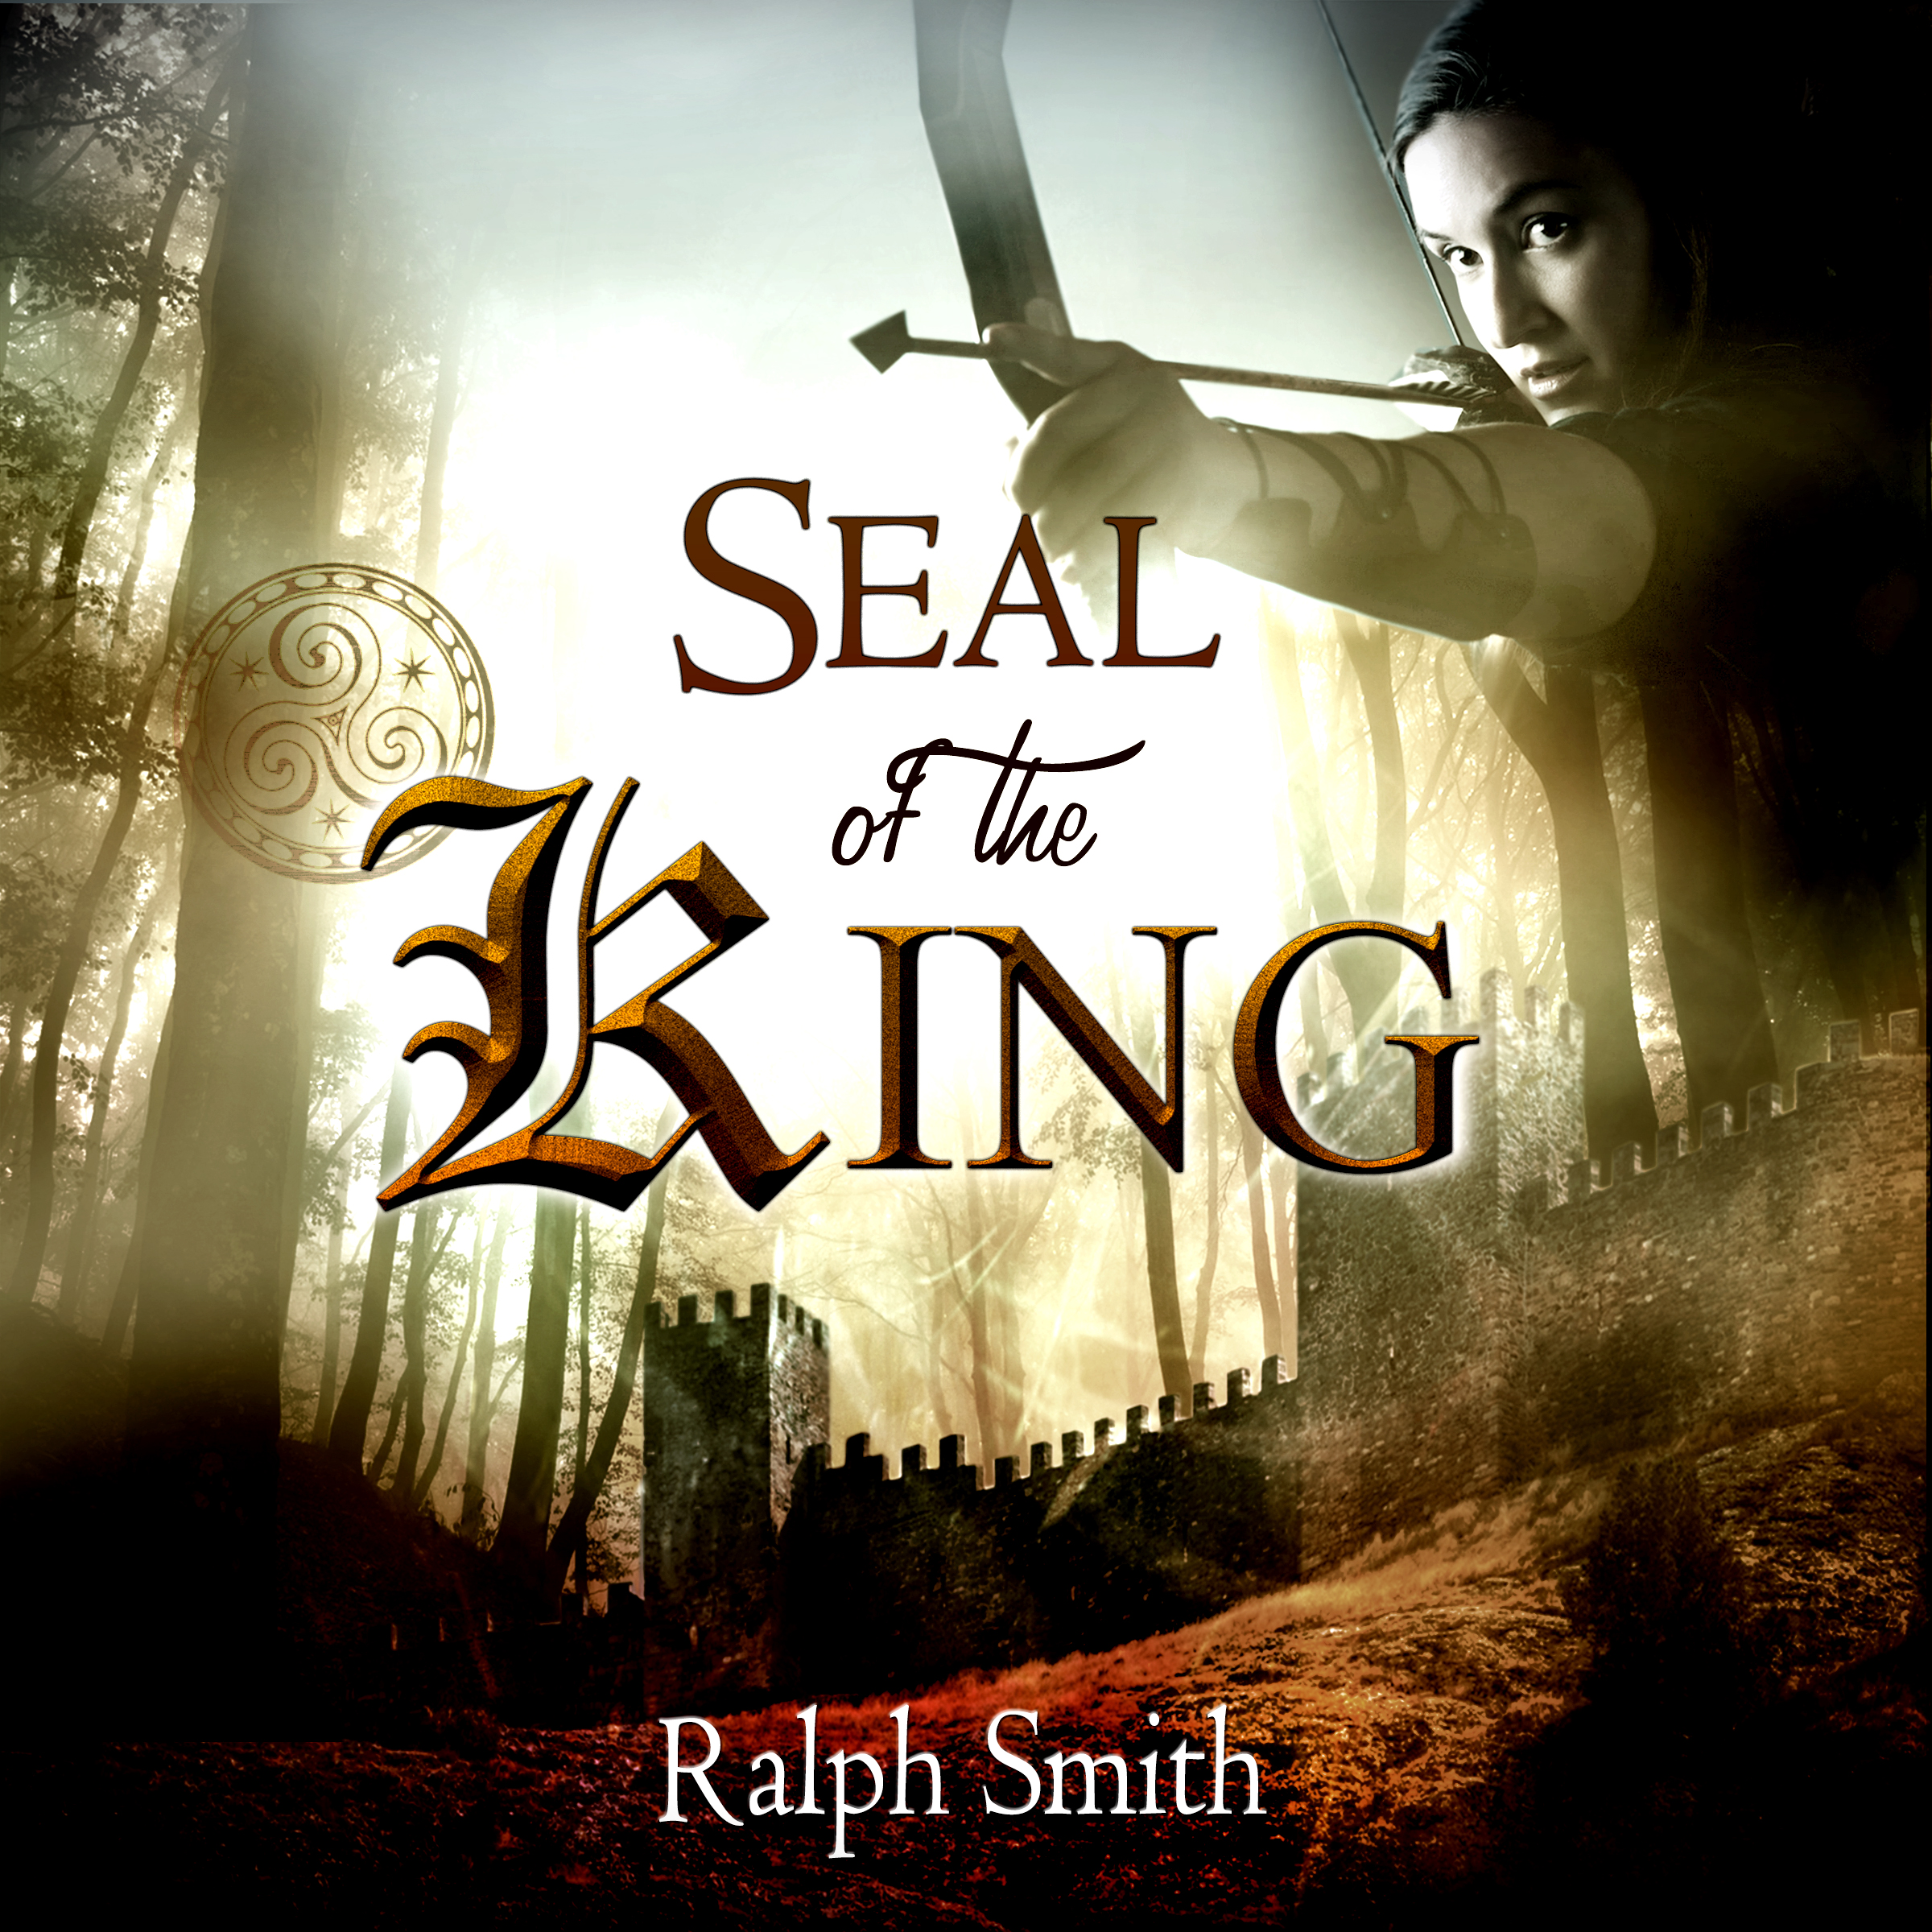 Seal of the King Audio book is now available